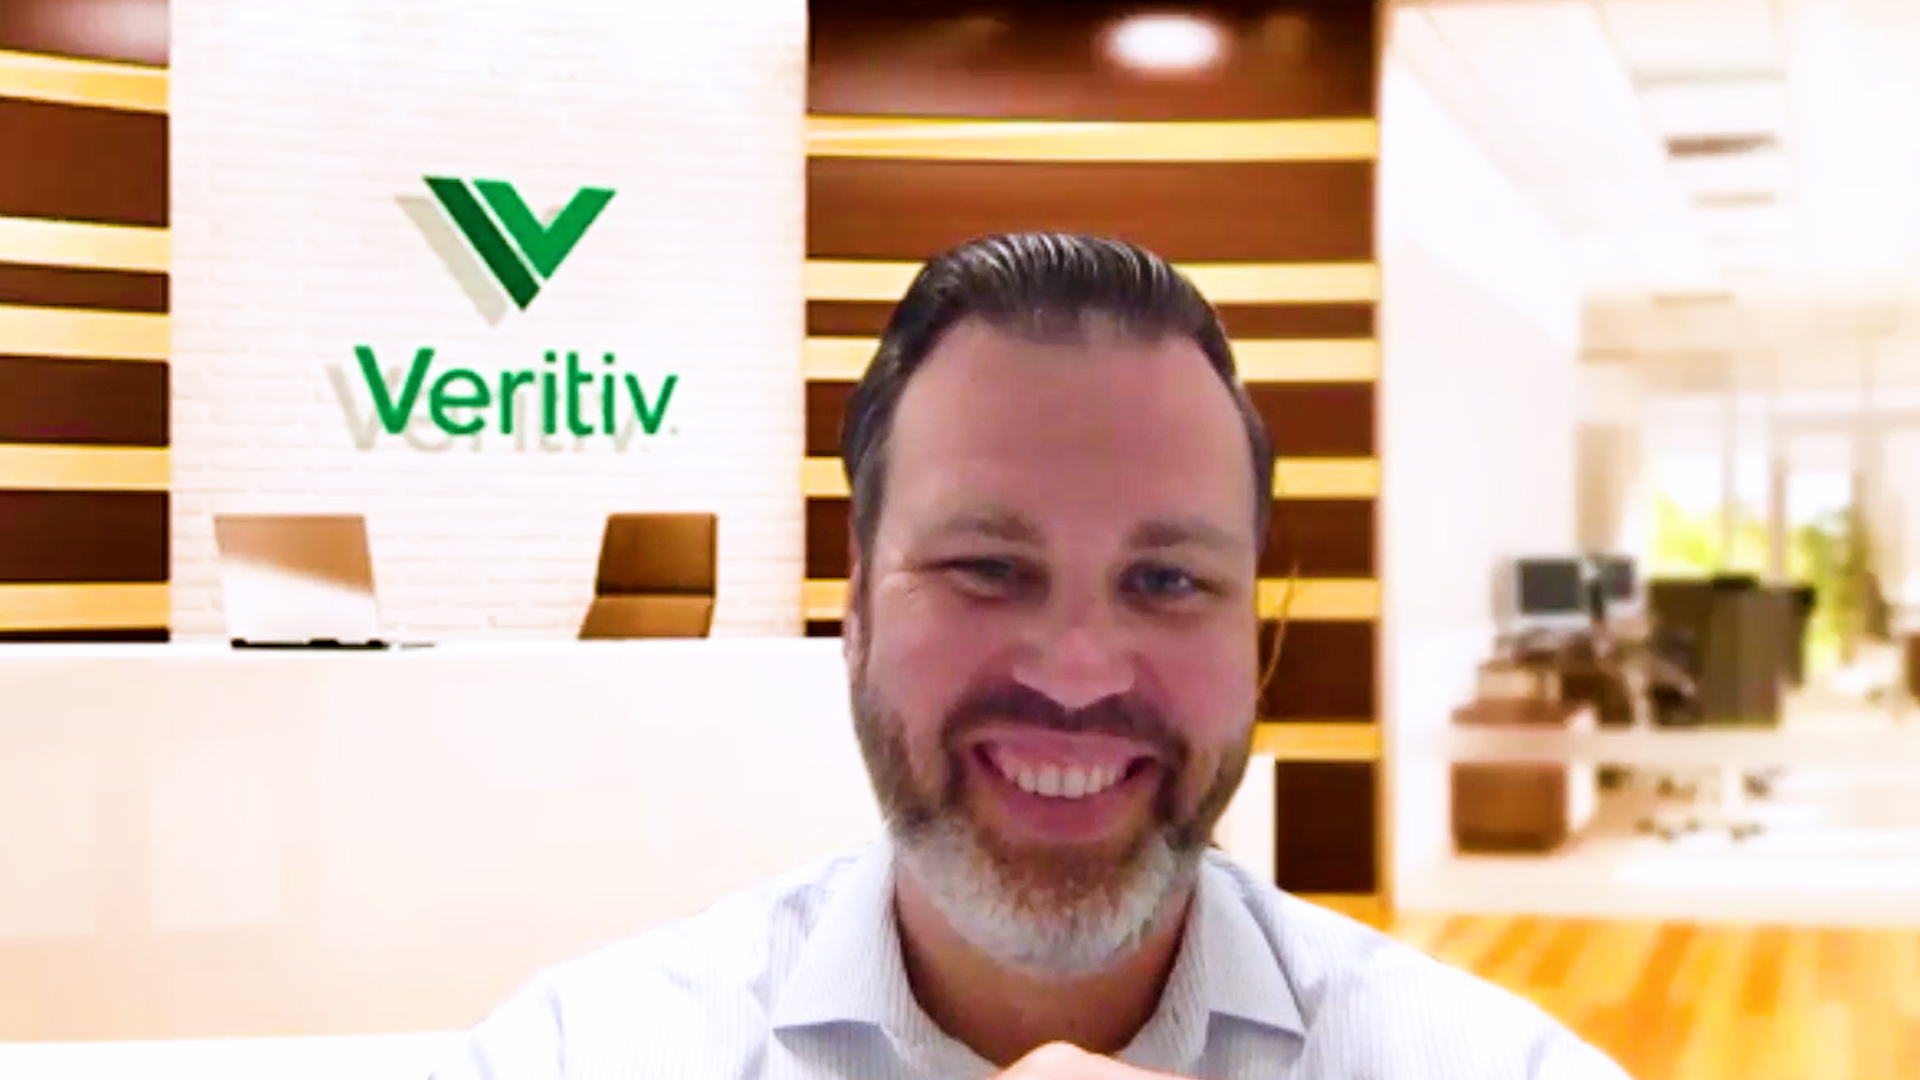 Matt Reddington Introduces Veritiv Vine